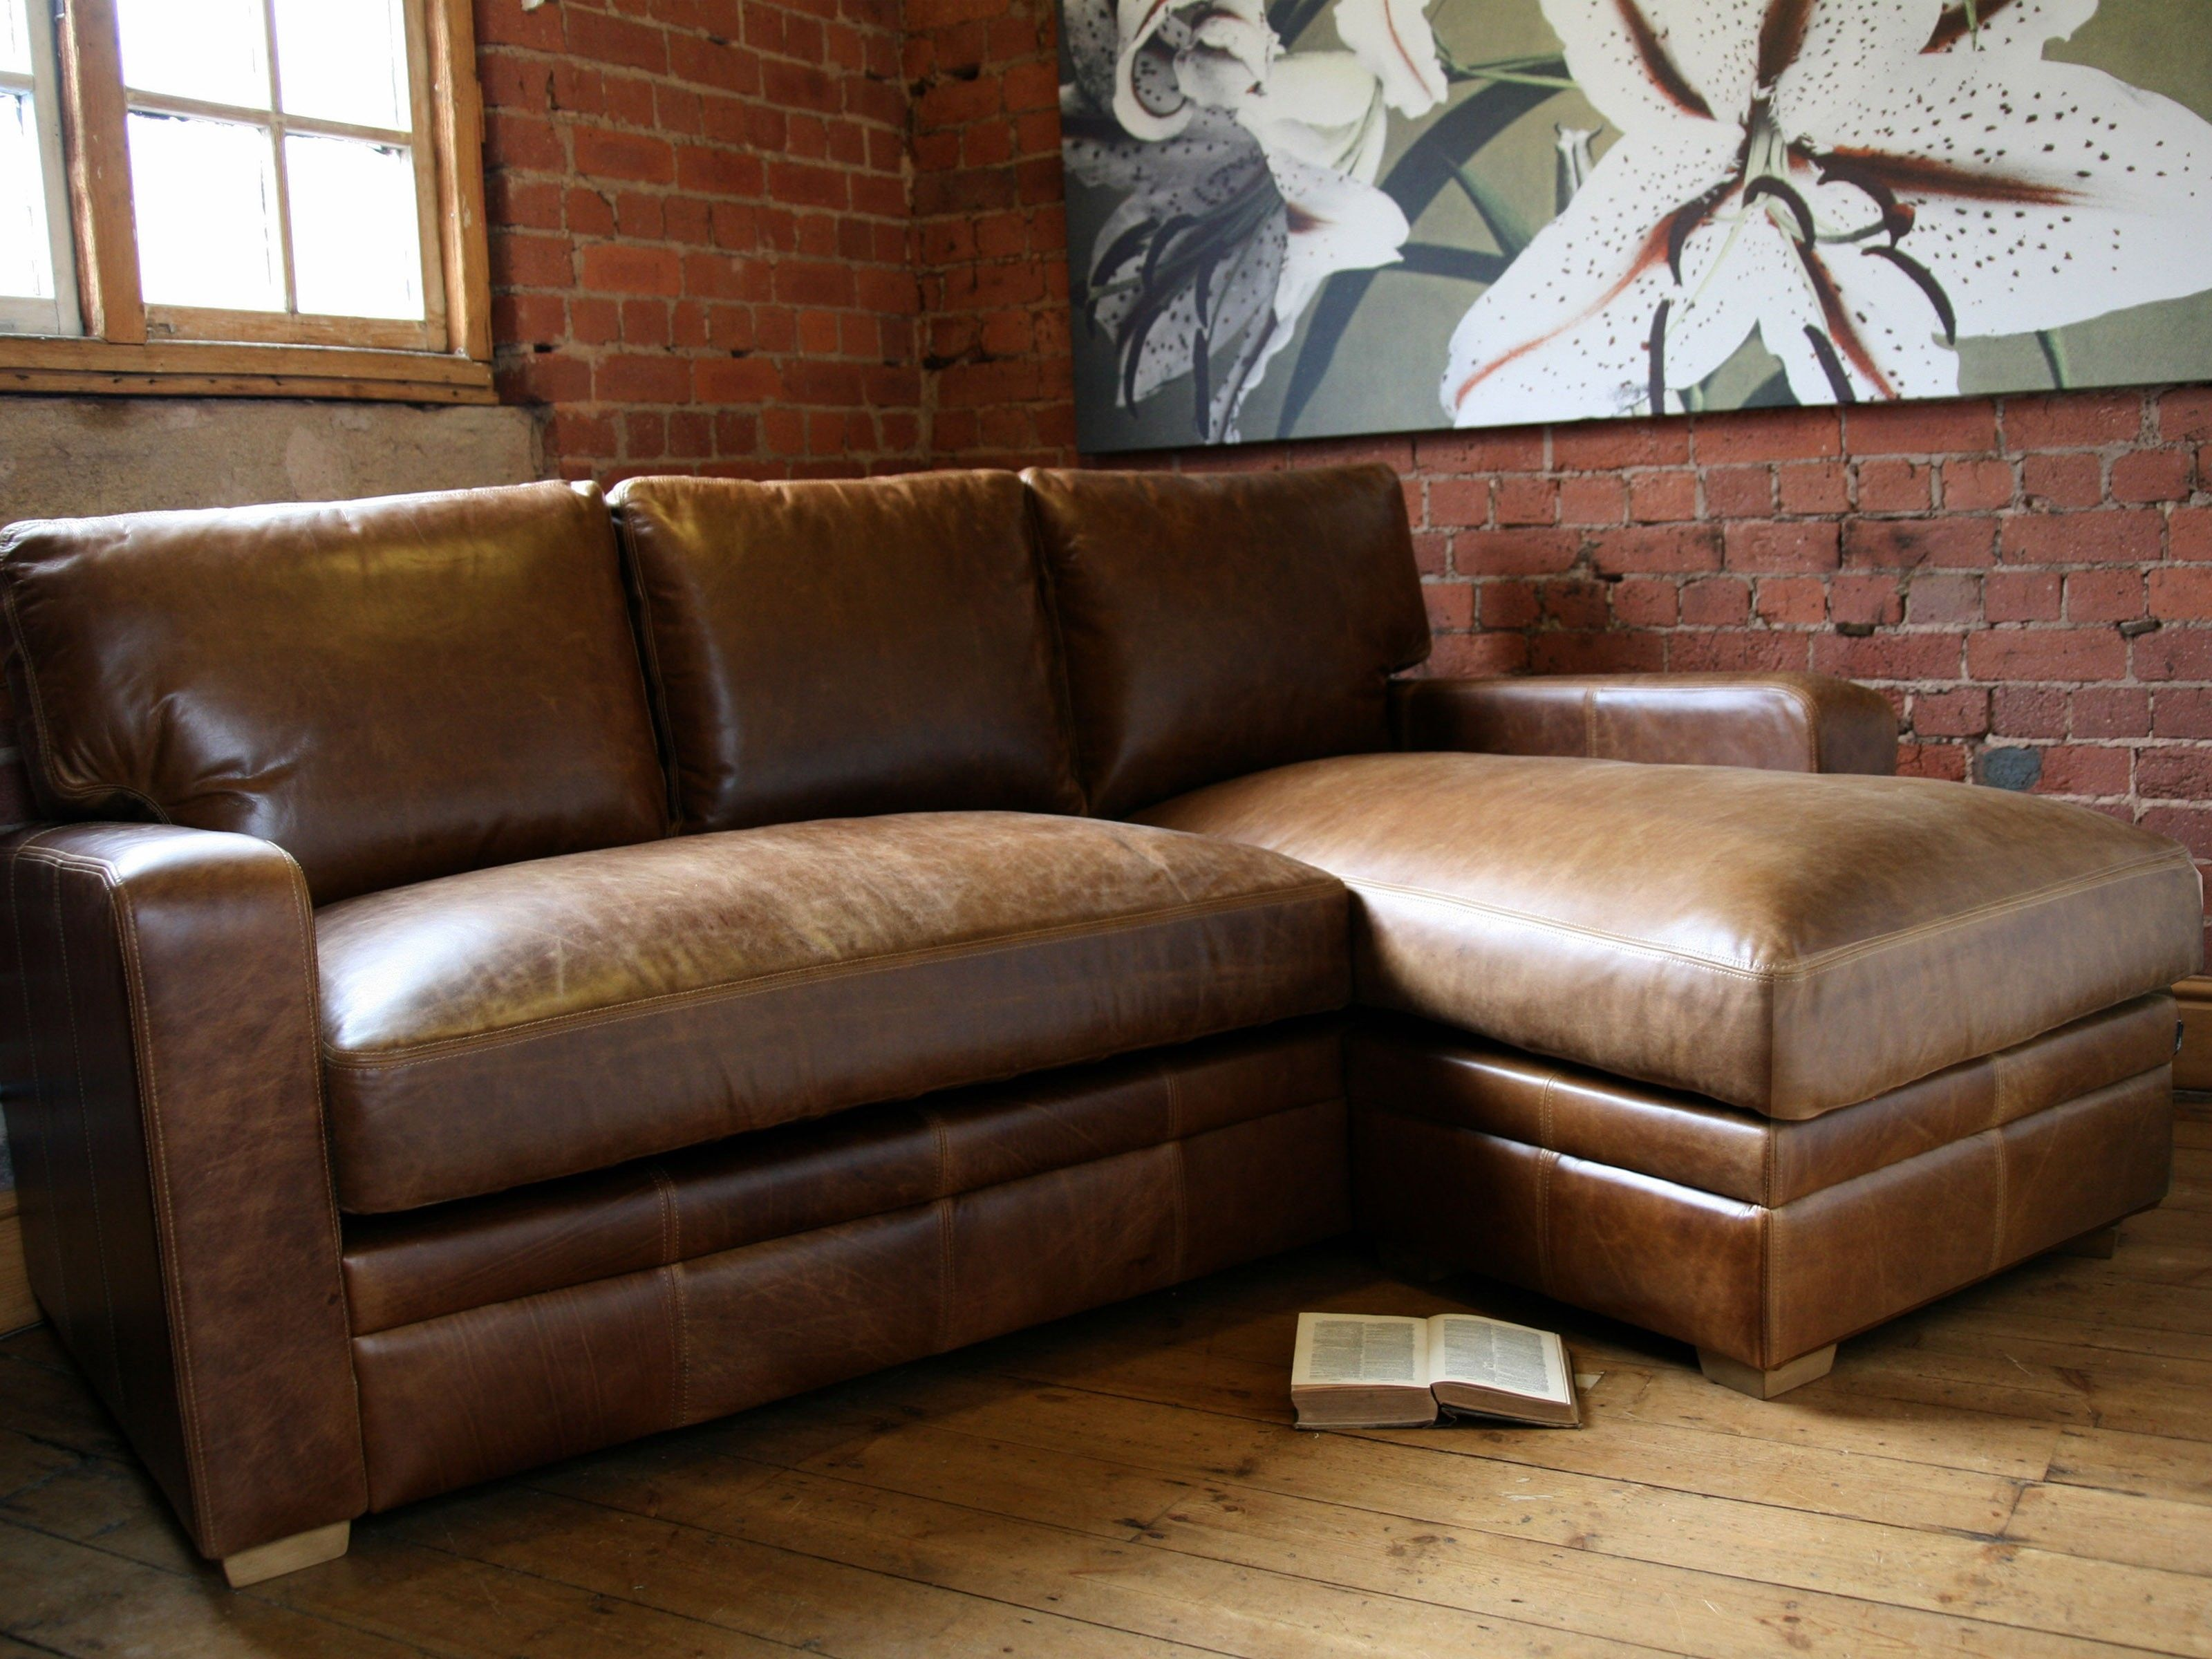 84 Cool Small Leather Sofas Uk In 2020 Sectional Sofa With Chaise Distressed Leather Sofa Leather Furniture Decor